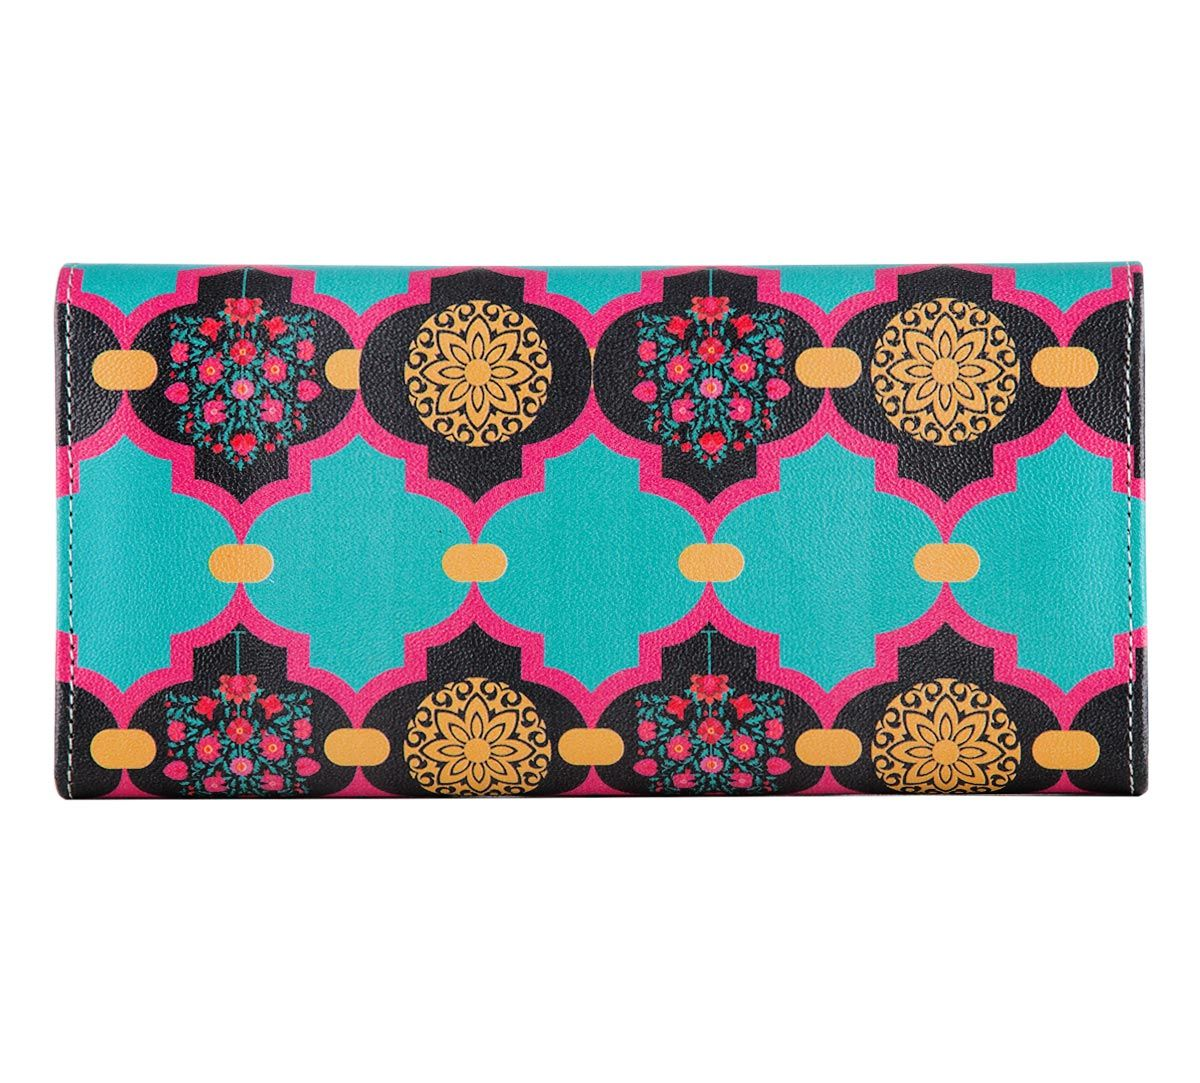 Latticed Synergy Ladies Wallet